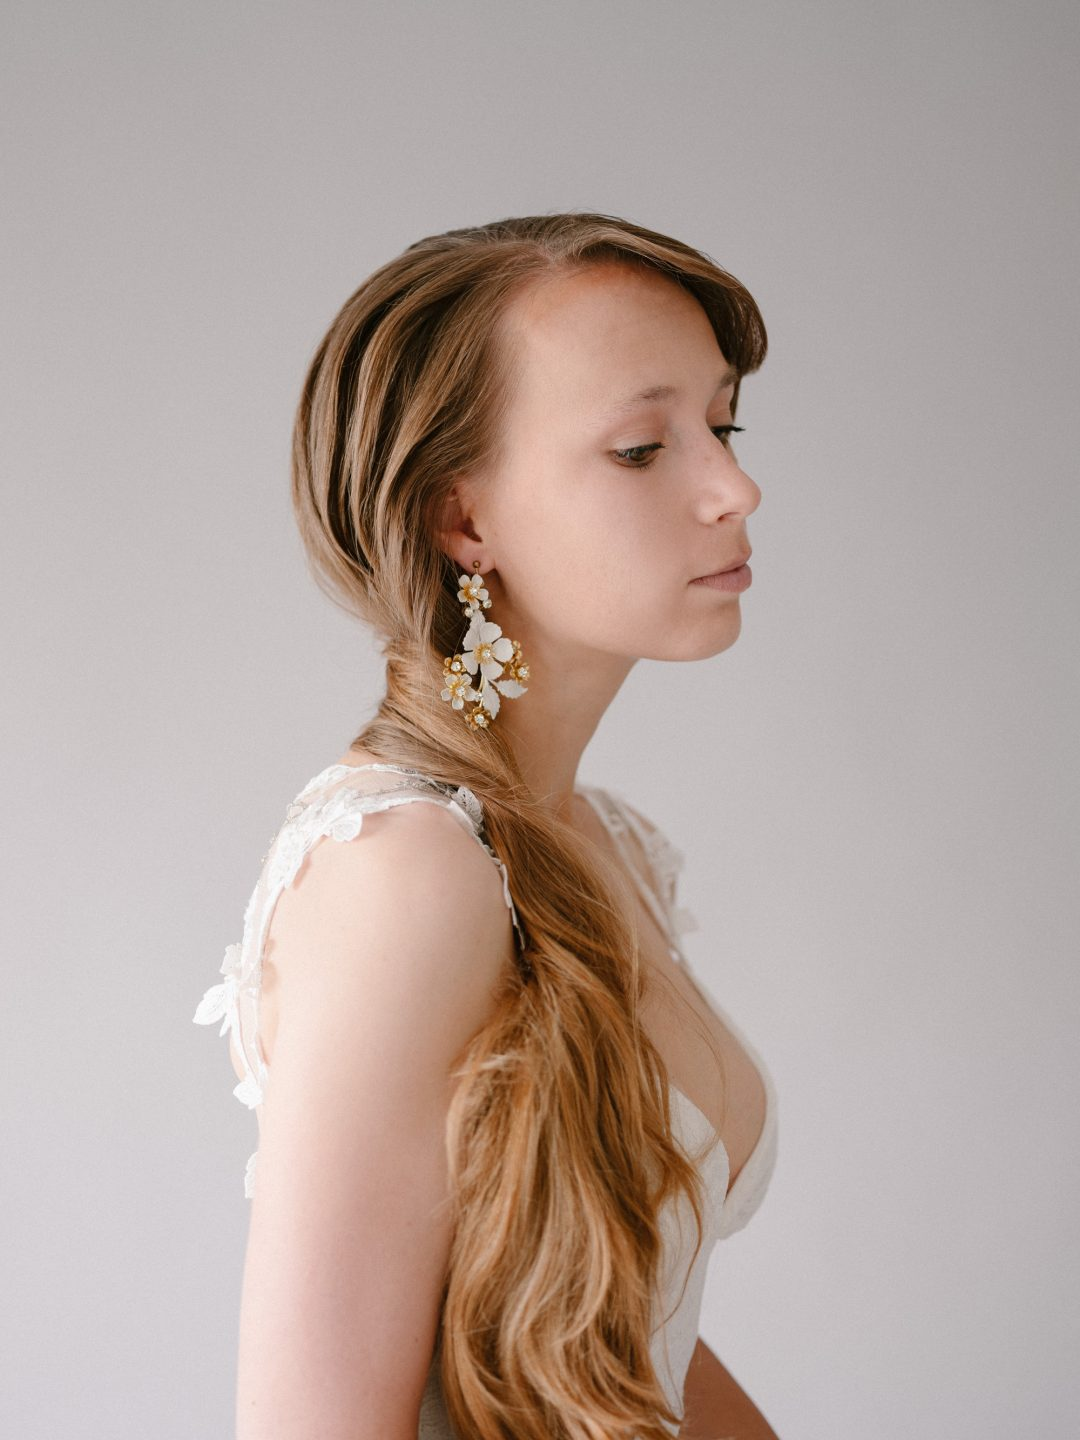 Style 901 - Floral Bridal Earrings - by SIBO Designs Couture www.sibodesigns.com